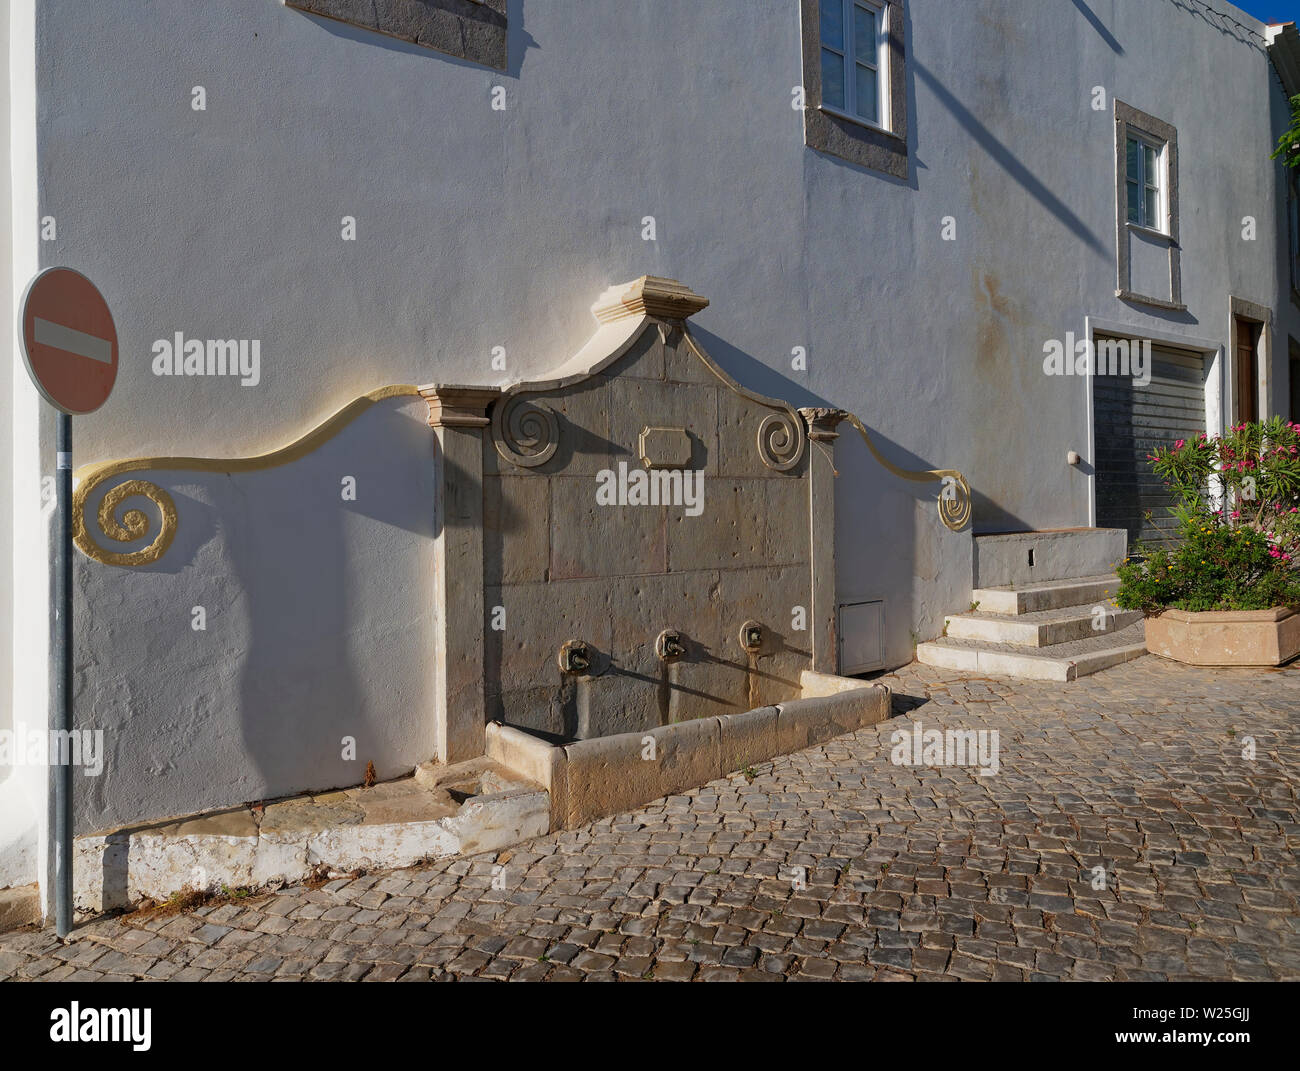 A Three Faucet Town water well in the side of an Old townhouse on a sloping cobbled street in the town of Estoi, near to Faro in the Algarve. Portugal Stock Photo